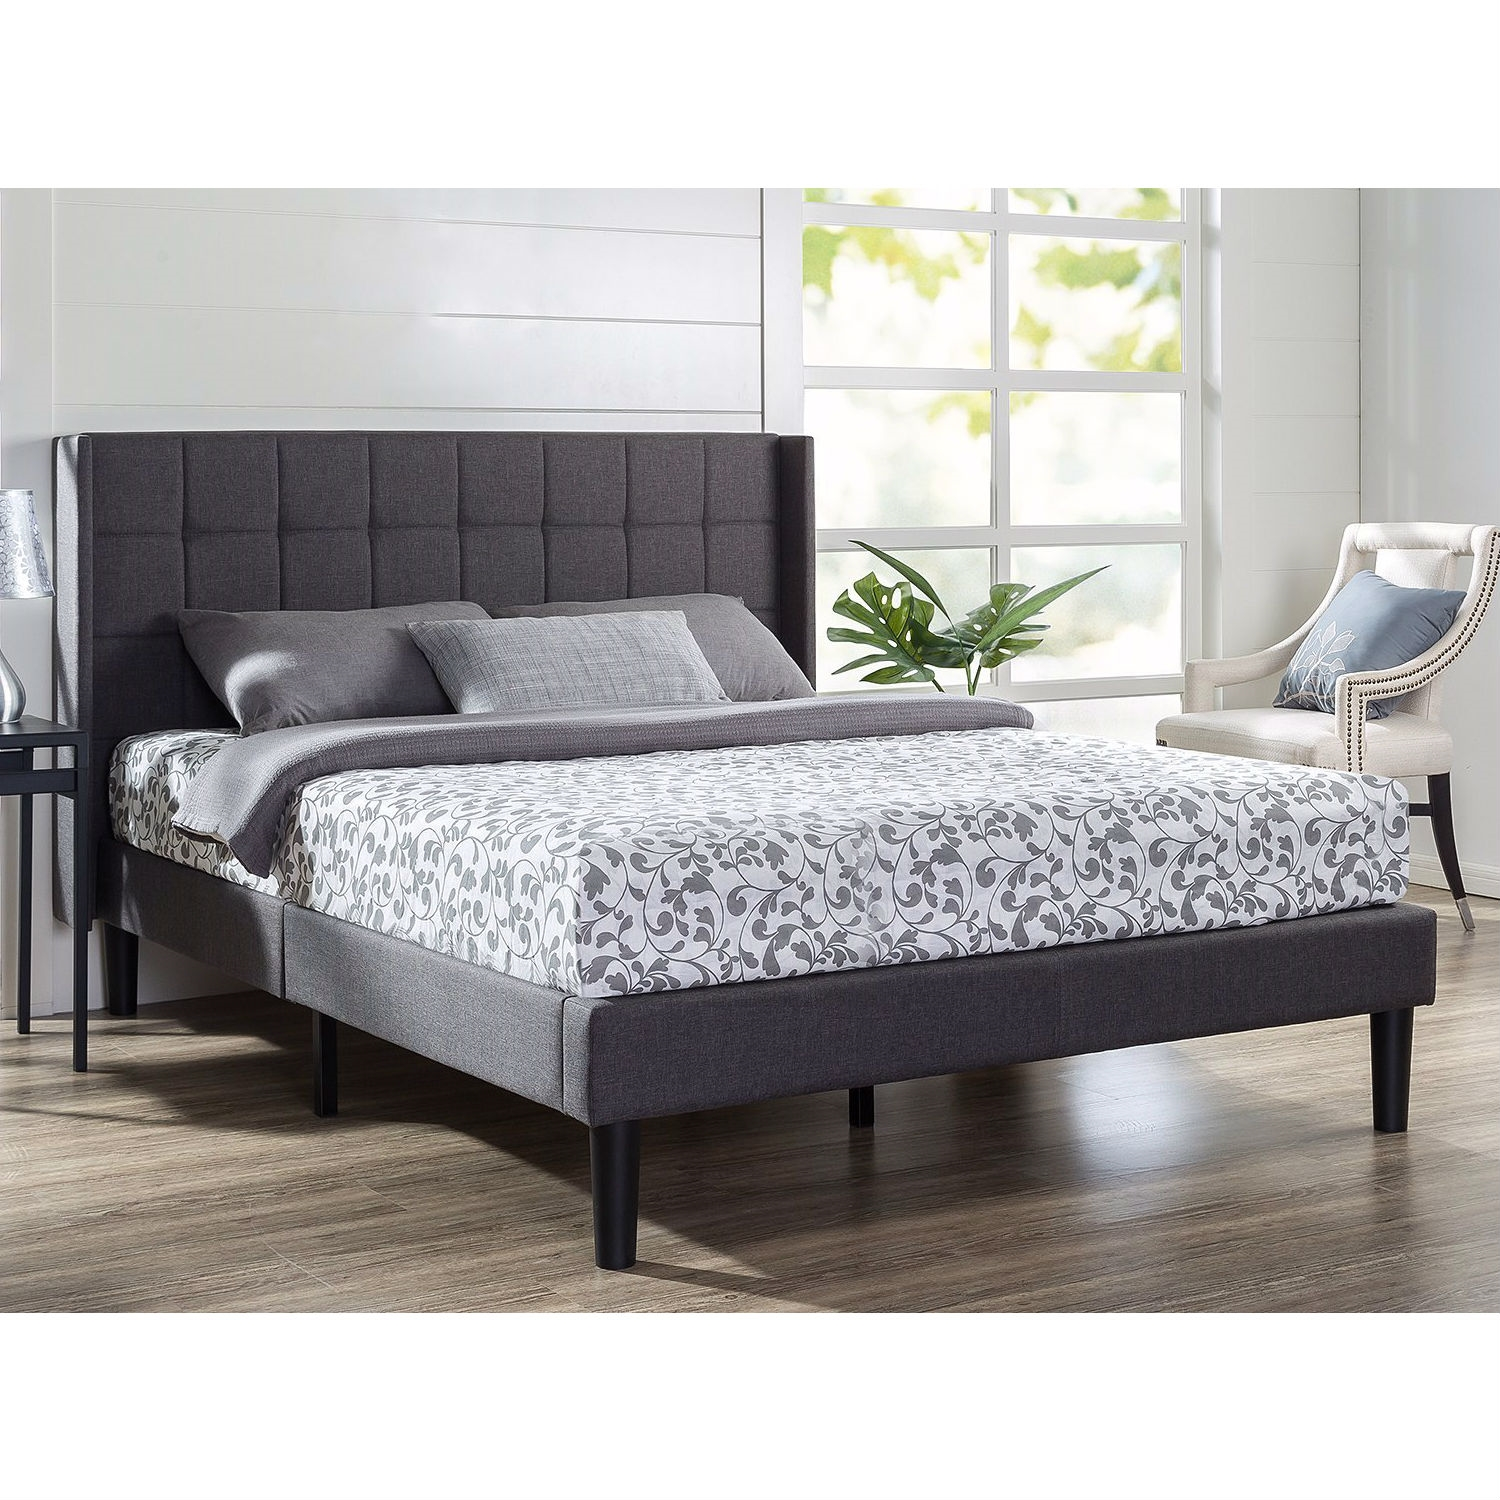 Queen Size Grey Wingback Upholstered Platform Bed Fastfurnishings Com